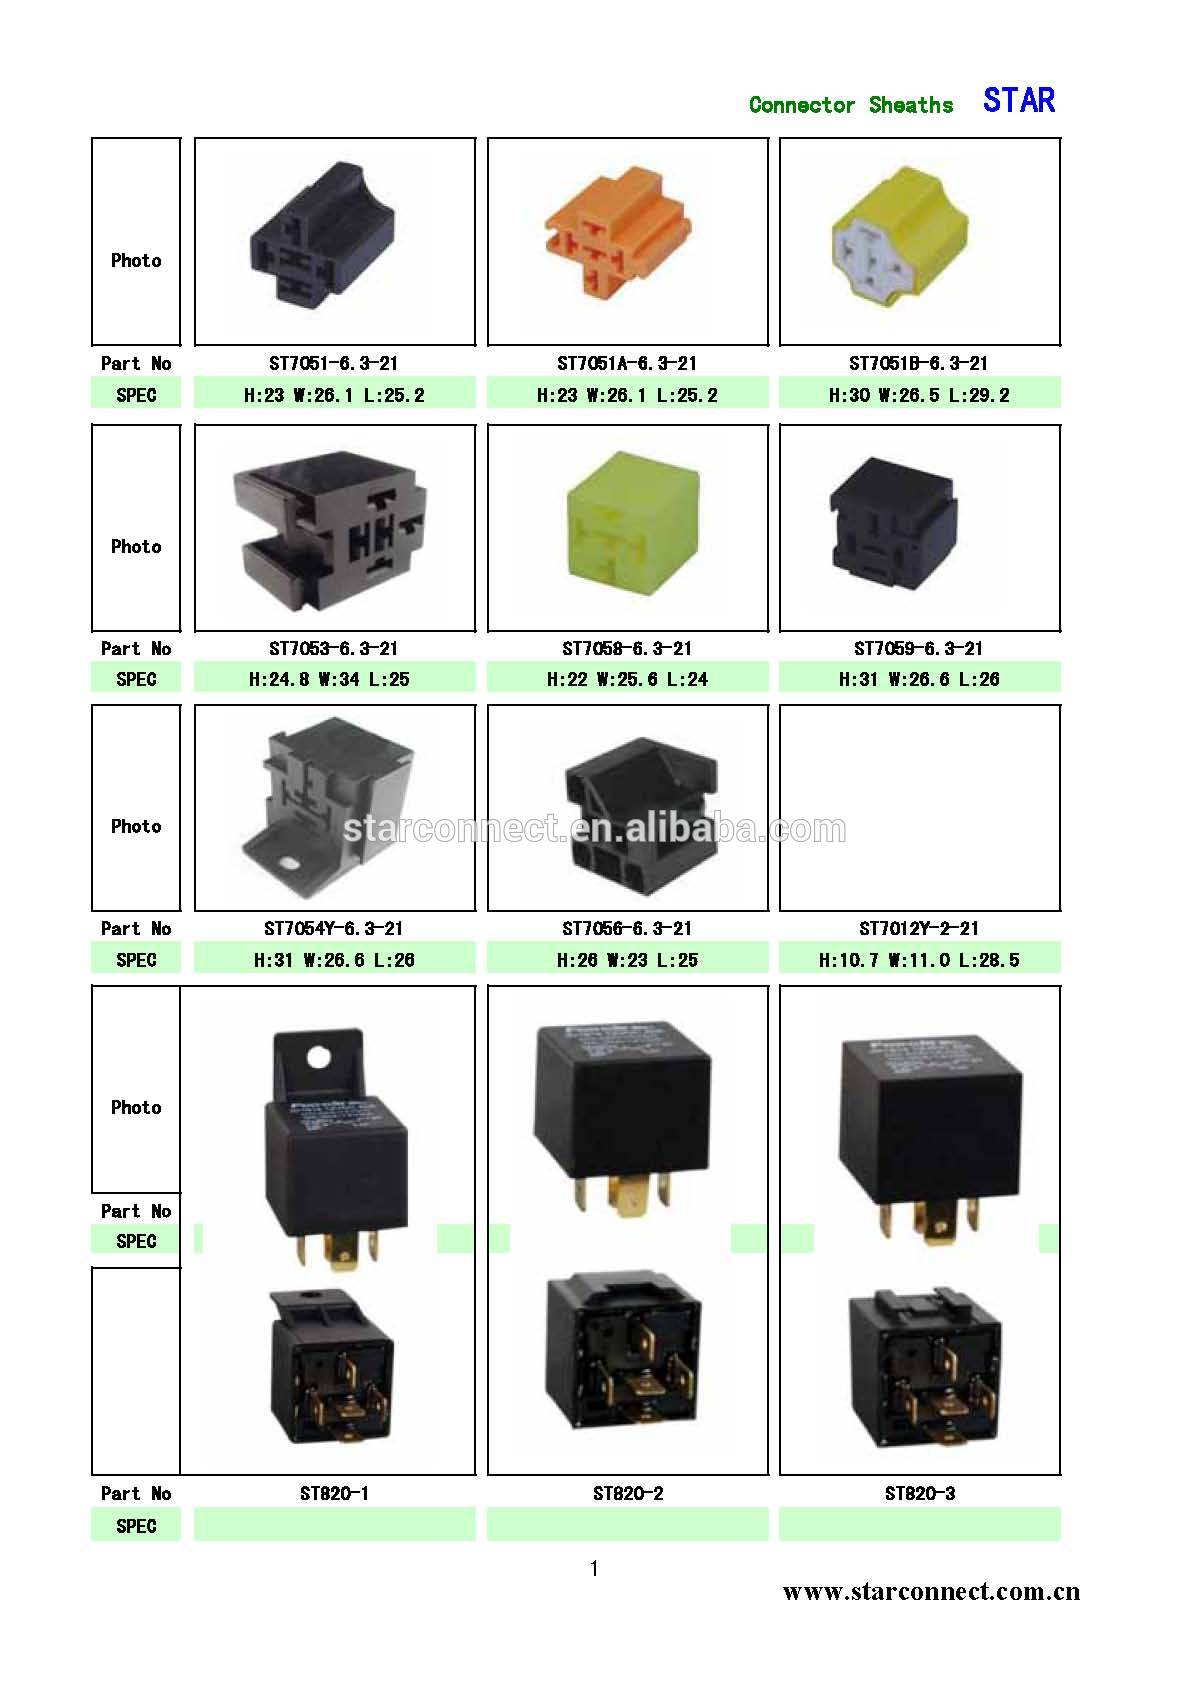 ptc relay wiring diagram with Denso Relay 1886193424 on Domestic Refrigerator Starting Relays additionally 197513 Generator Start C additionally Irn50200hcc together with Electronic Room Thermostat With Display in addition Positive train control.